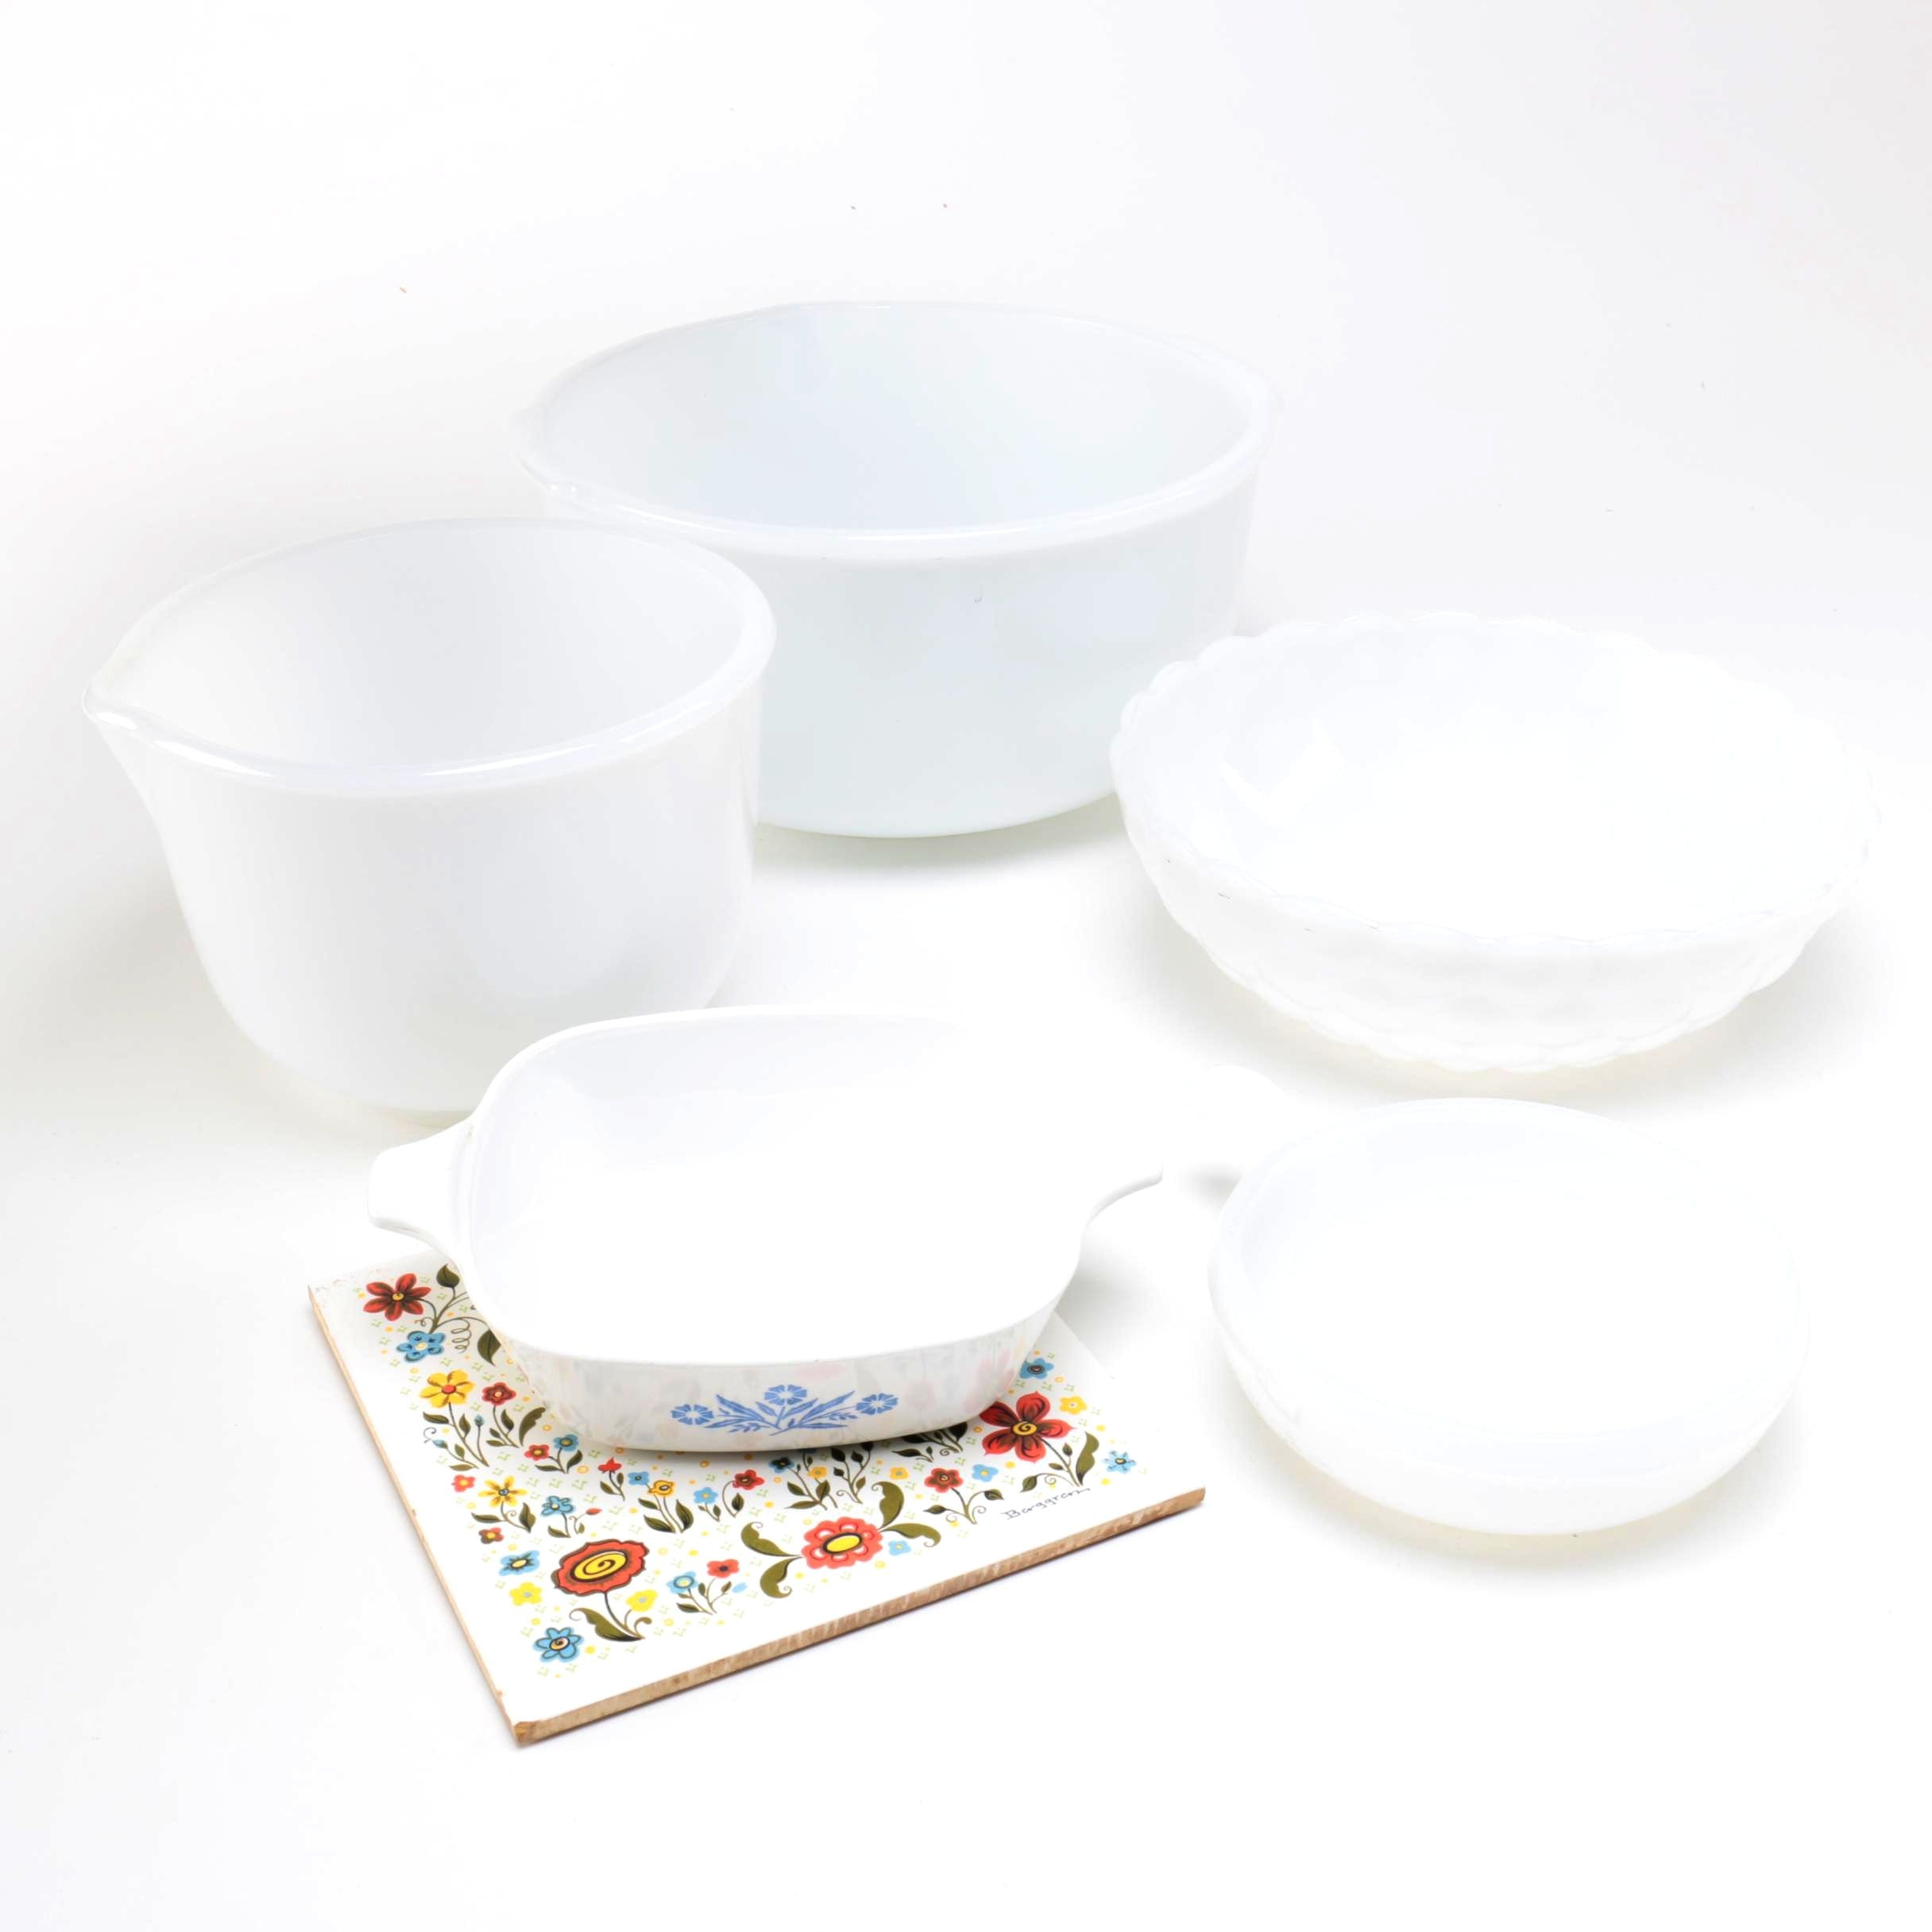 Glass Mixing Bowls Including Glasbake, Corning Ware and a 1960's Berggren Trivet